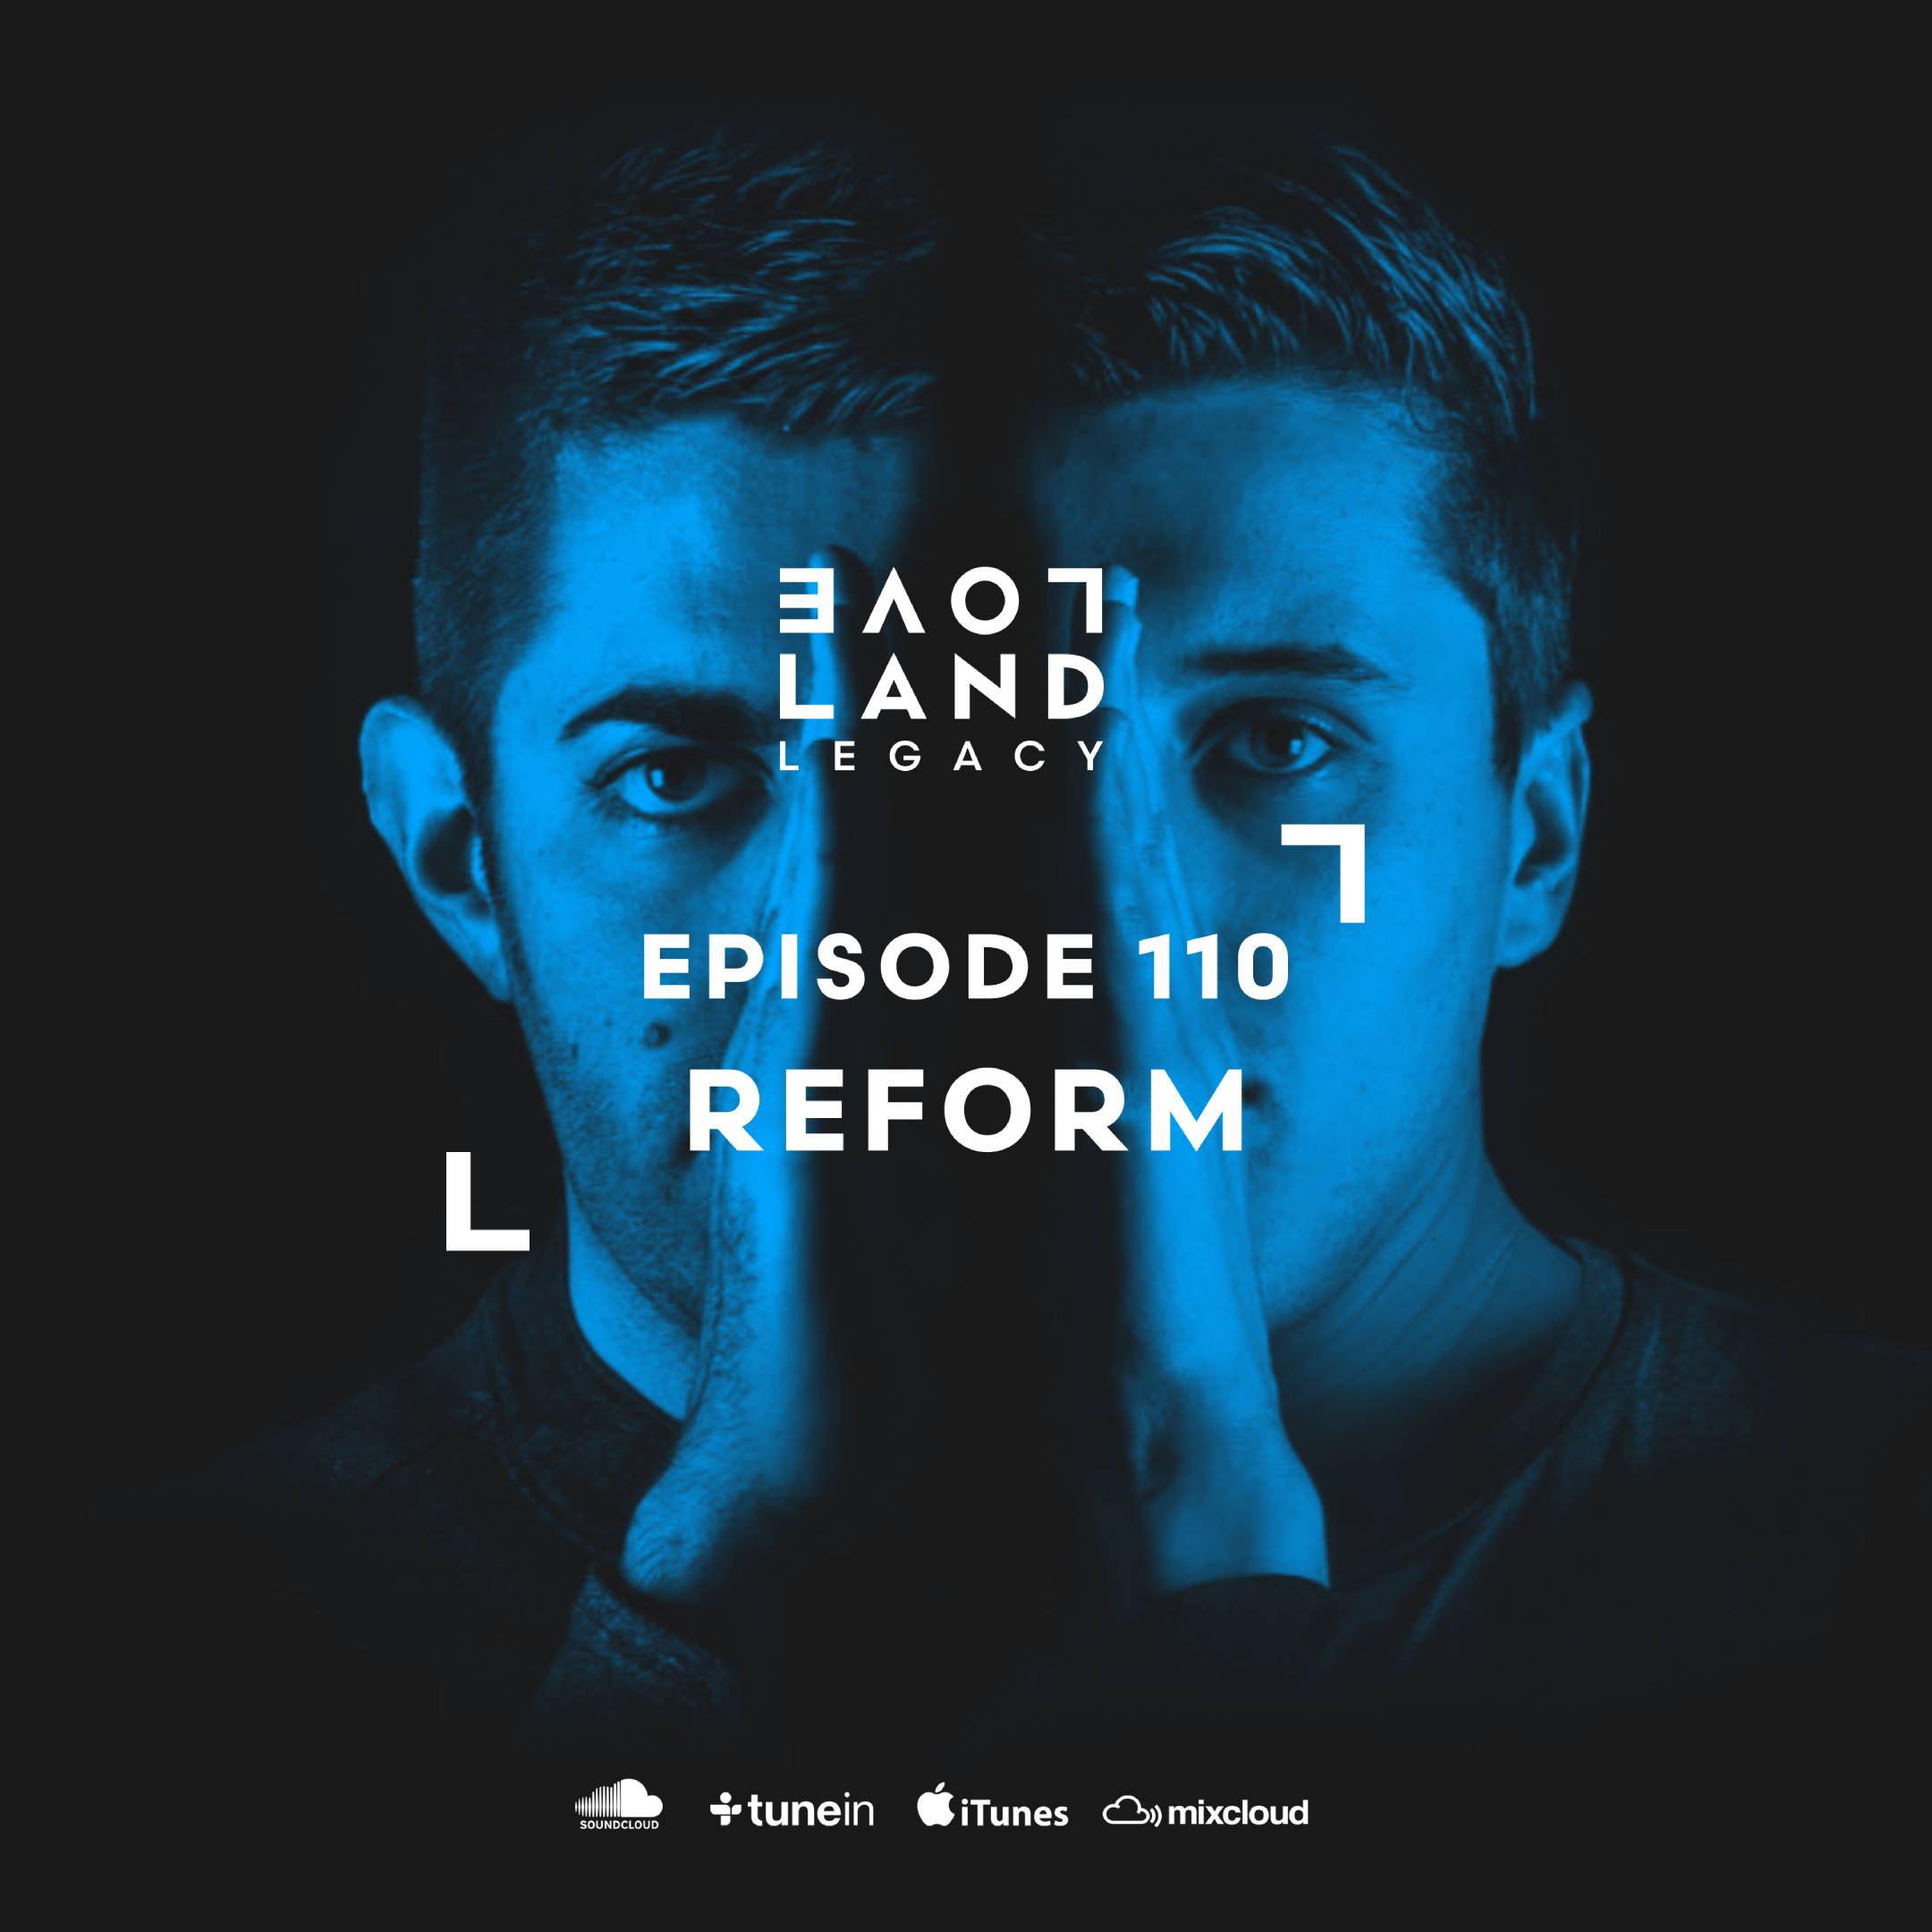 Download Loveland Legacy 110 REFORM now in high MP3 format